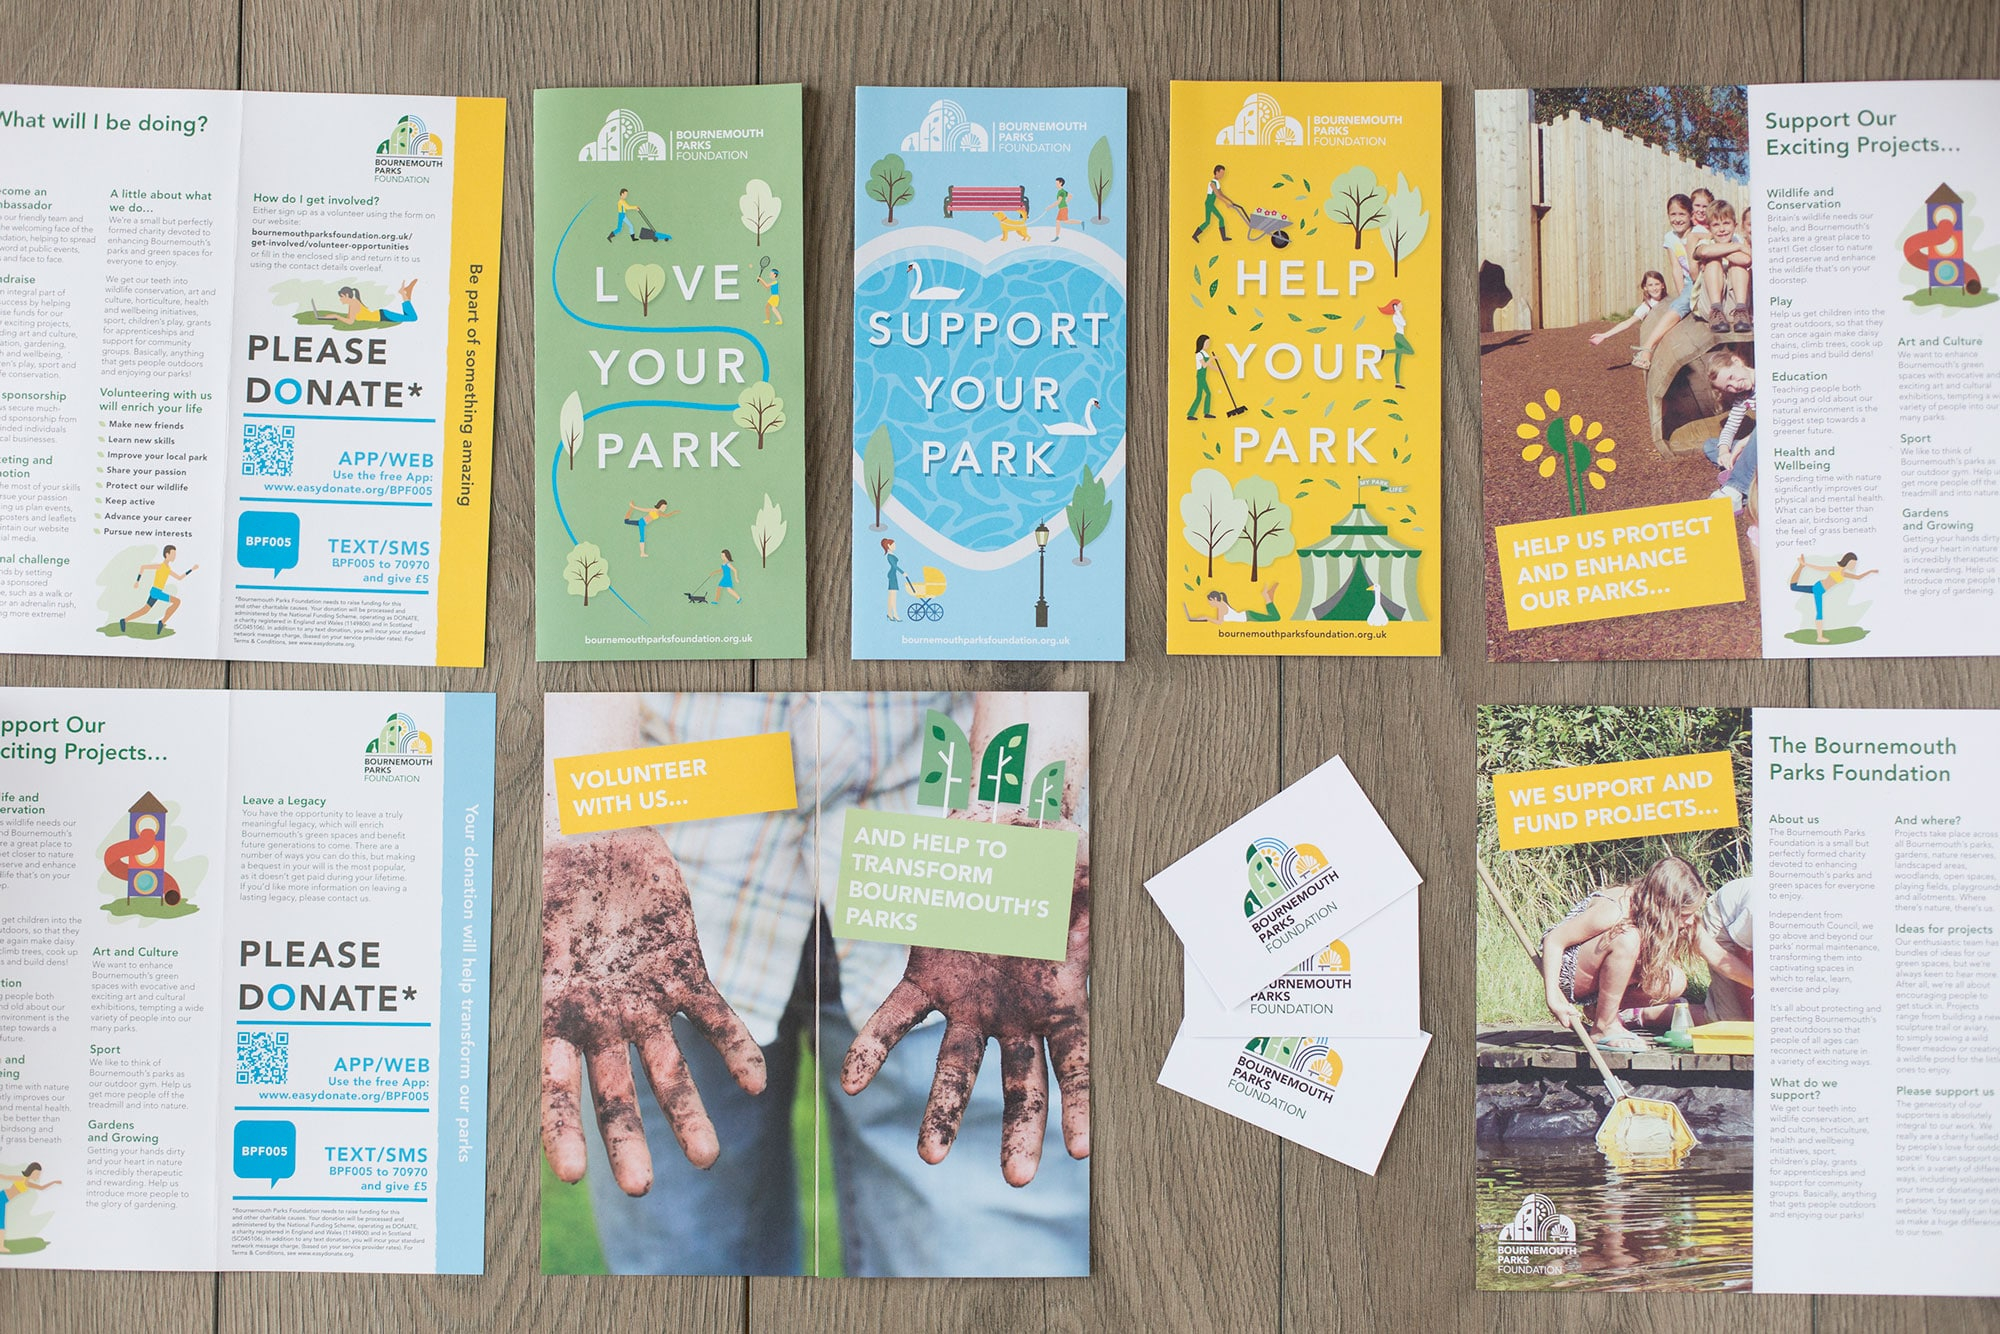 Bournemouth Parks Foundation branding and print